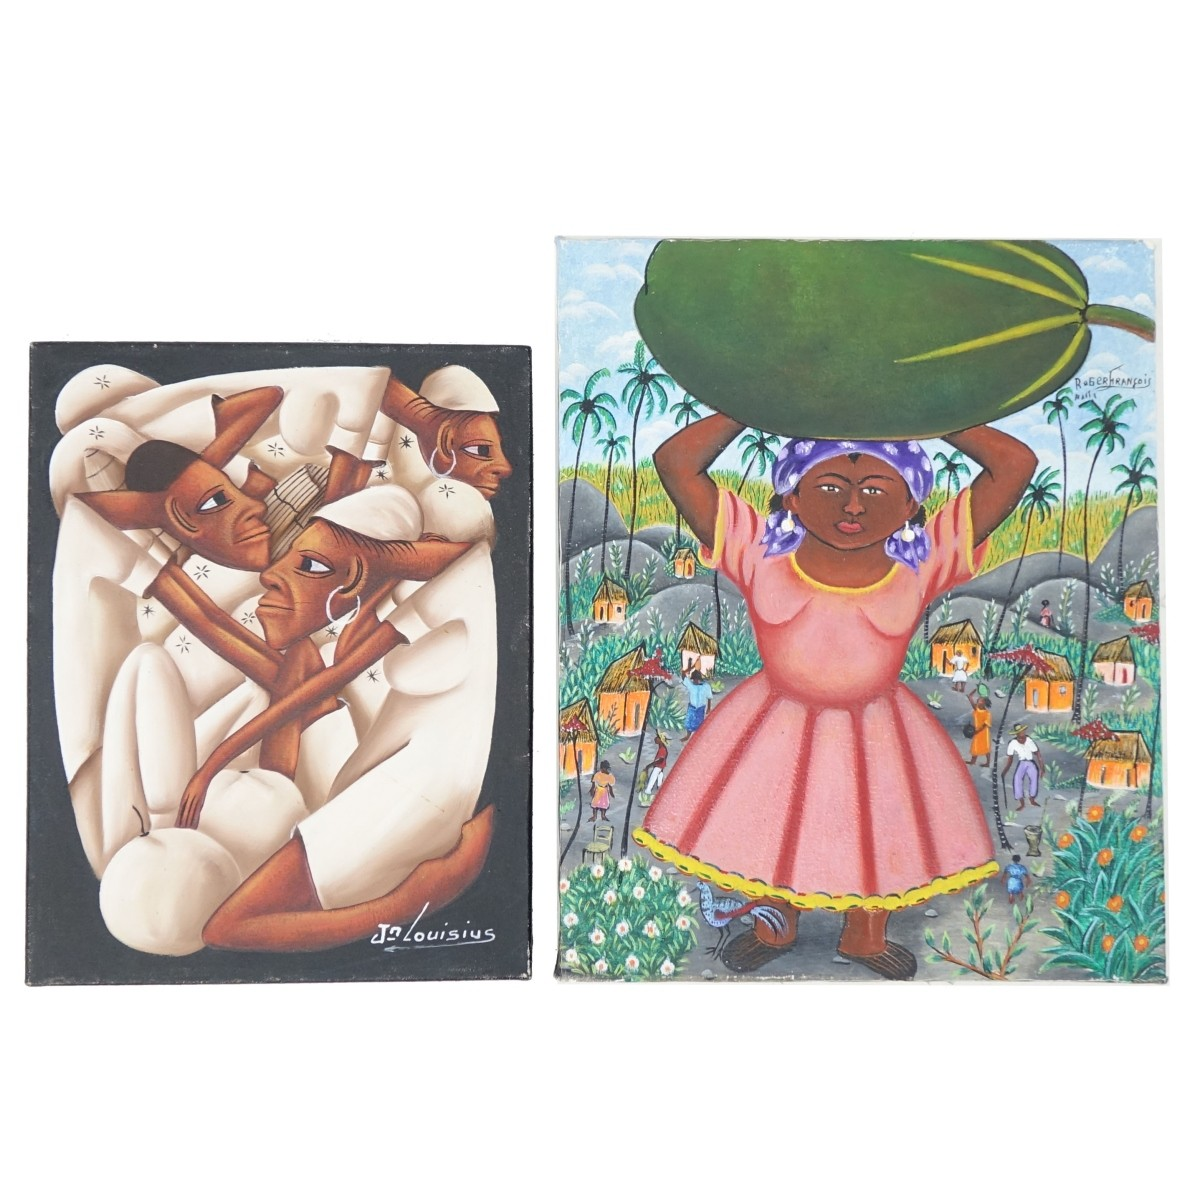 Roger Francois and Jean Bruno Louisius Paintings